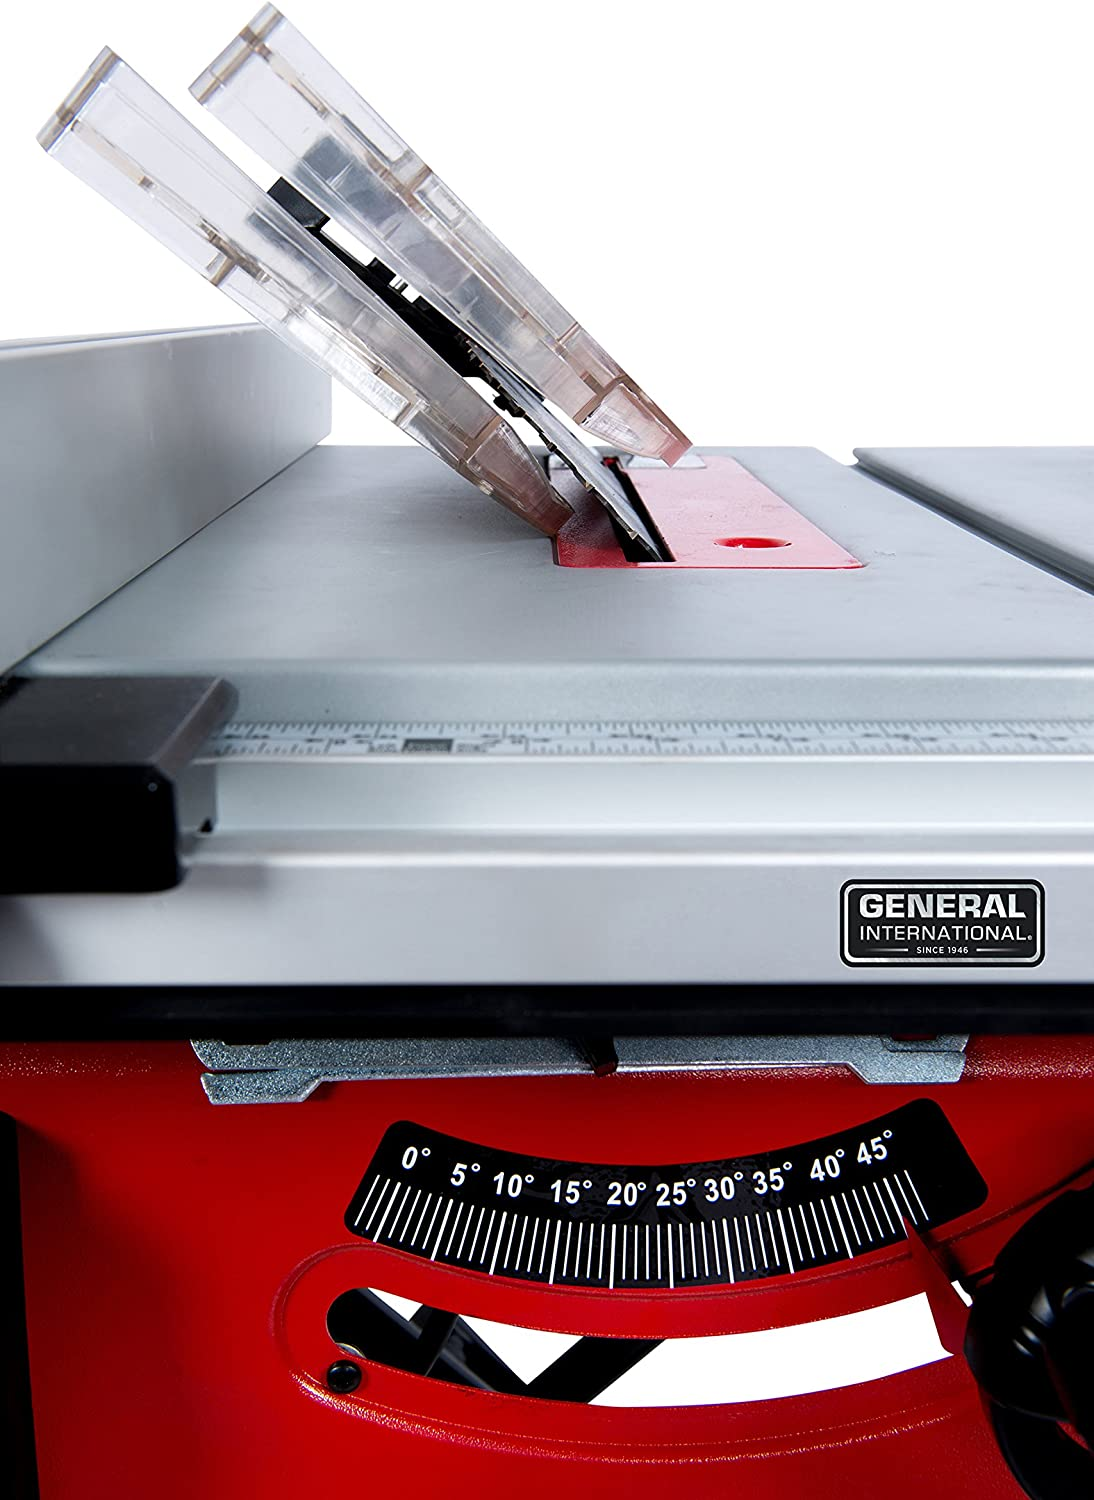 General International TS4004 Table Saws product image 13